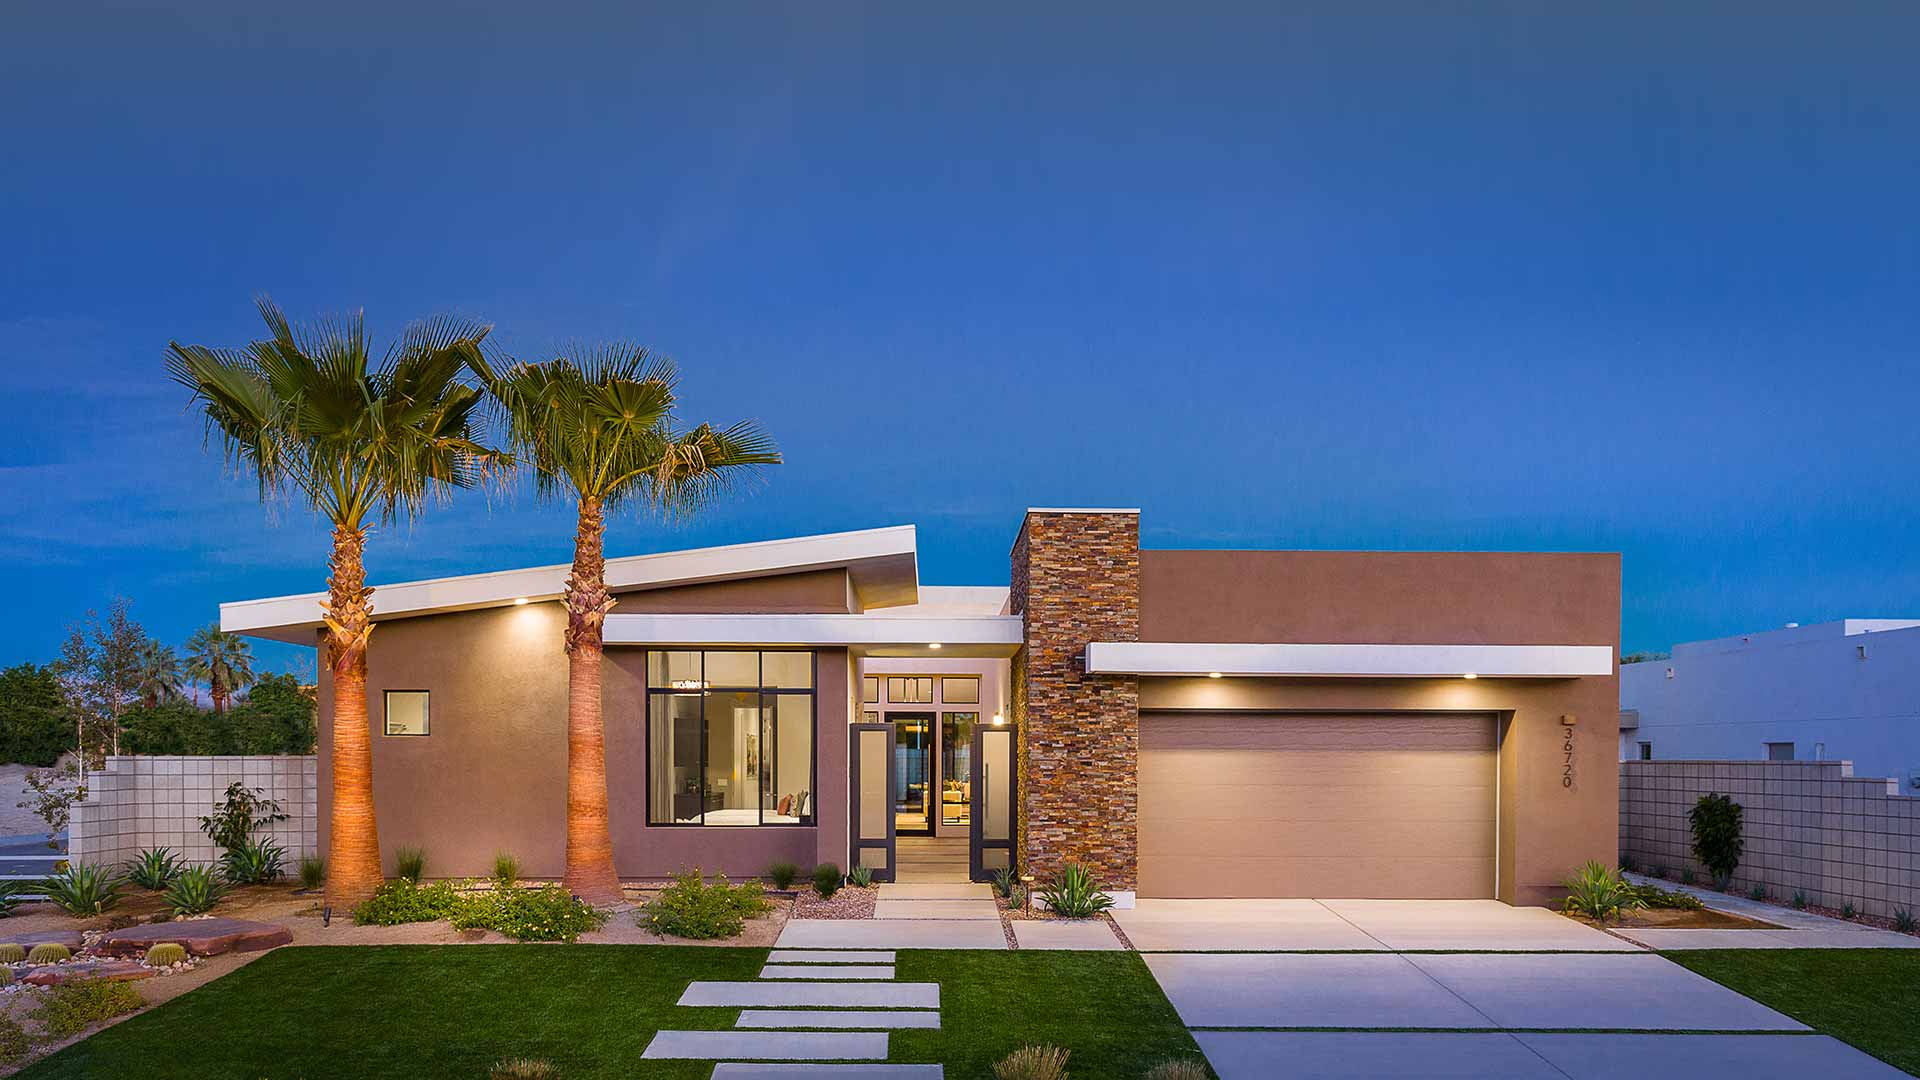 Verlaine model home exterior at night